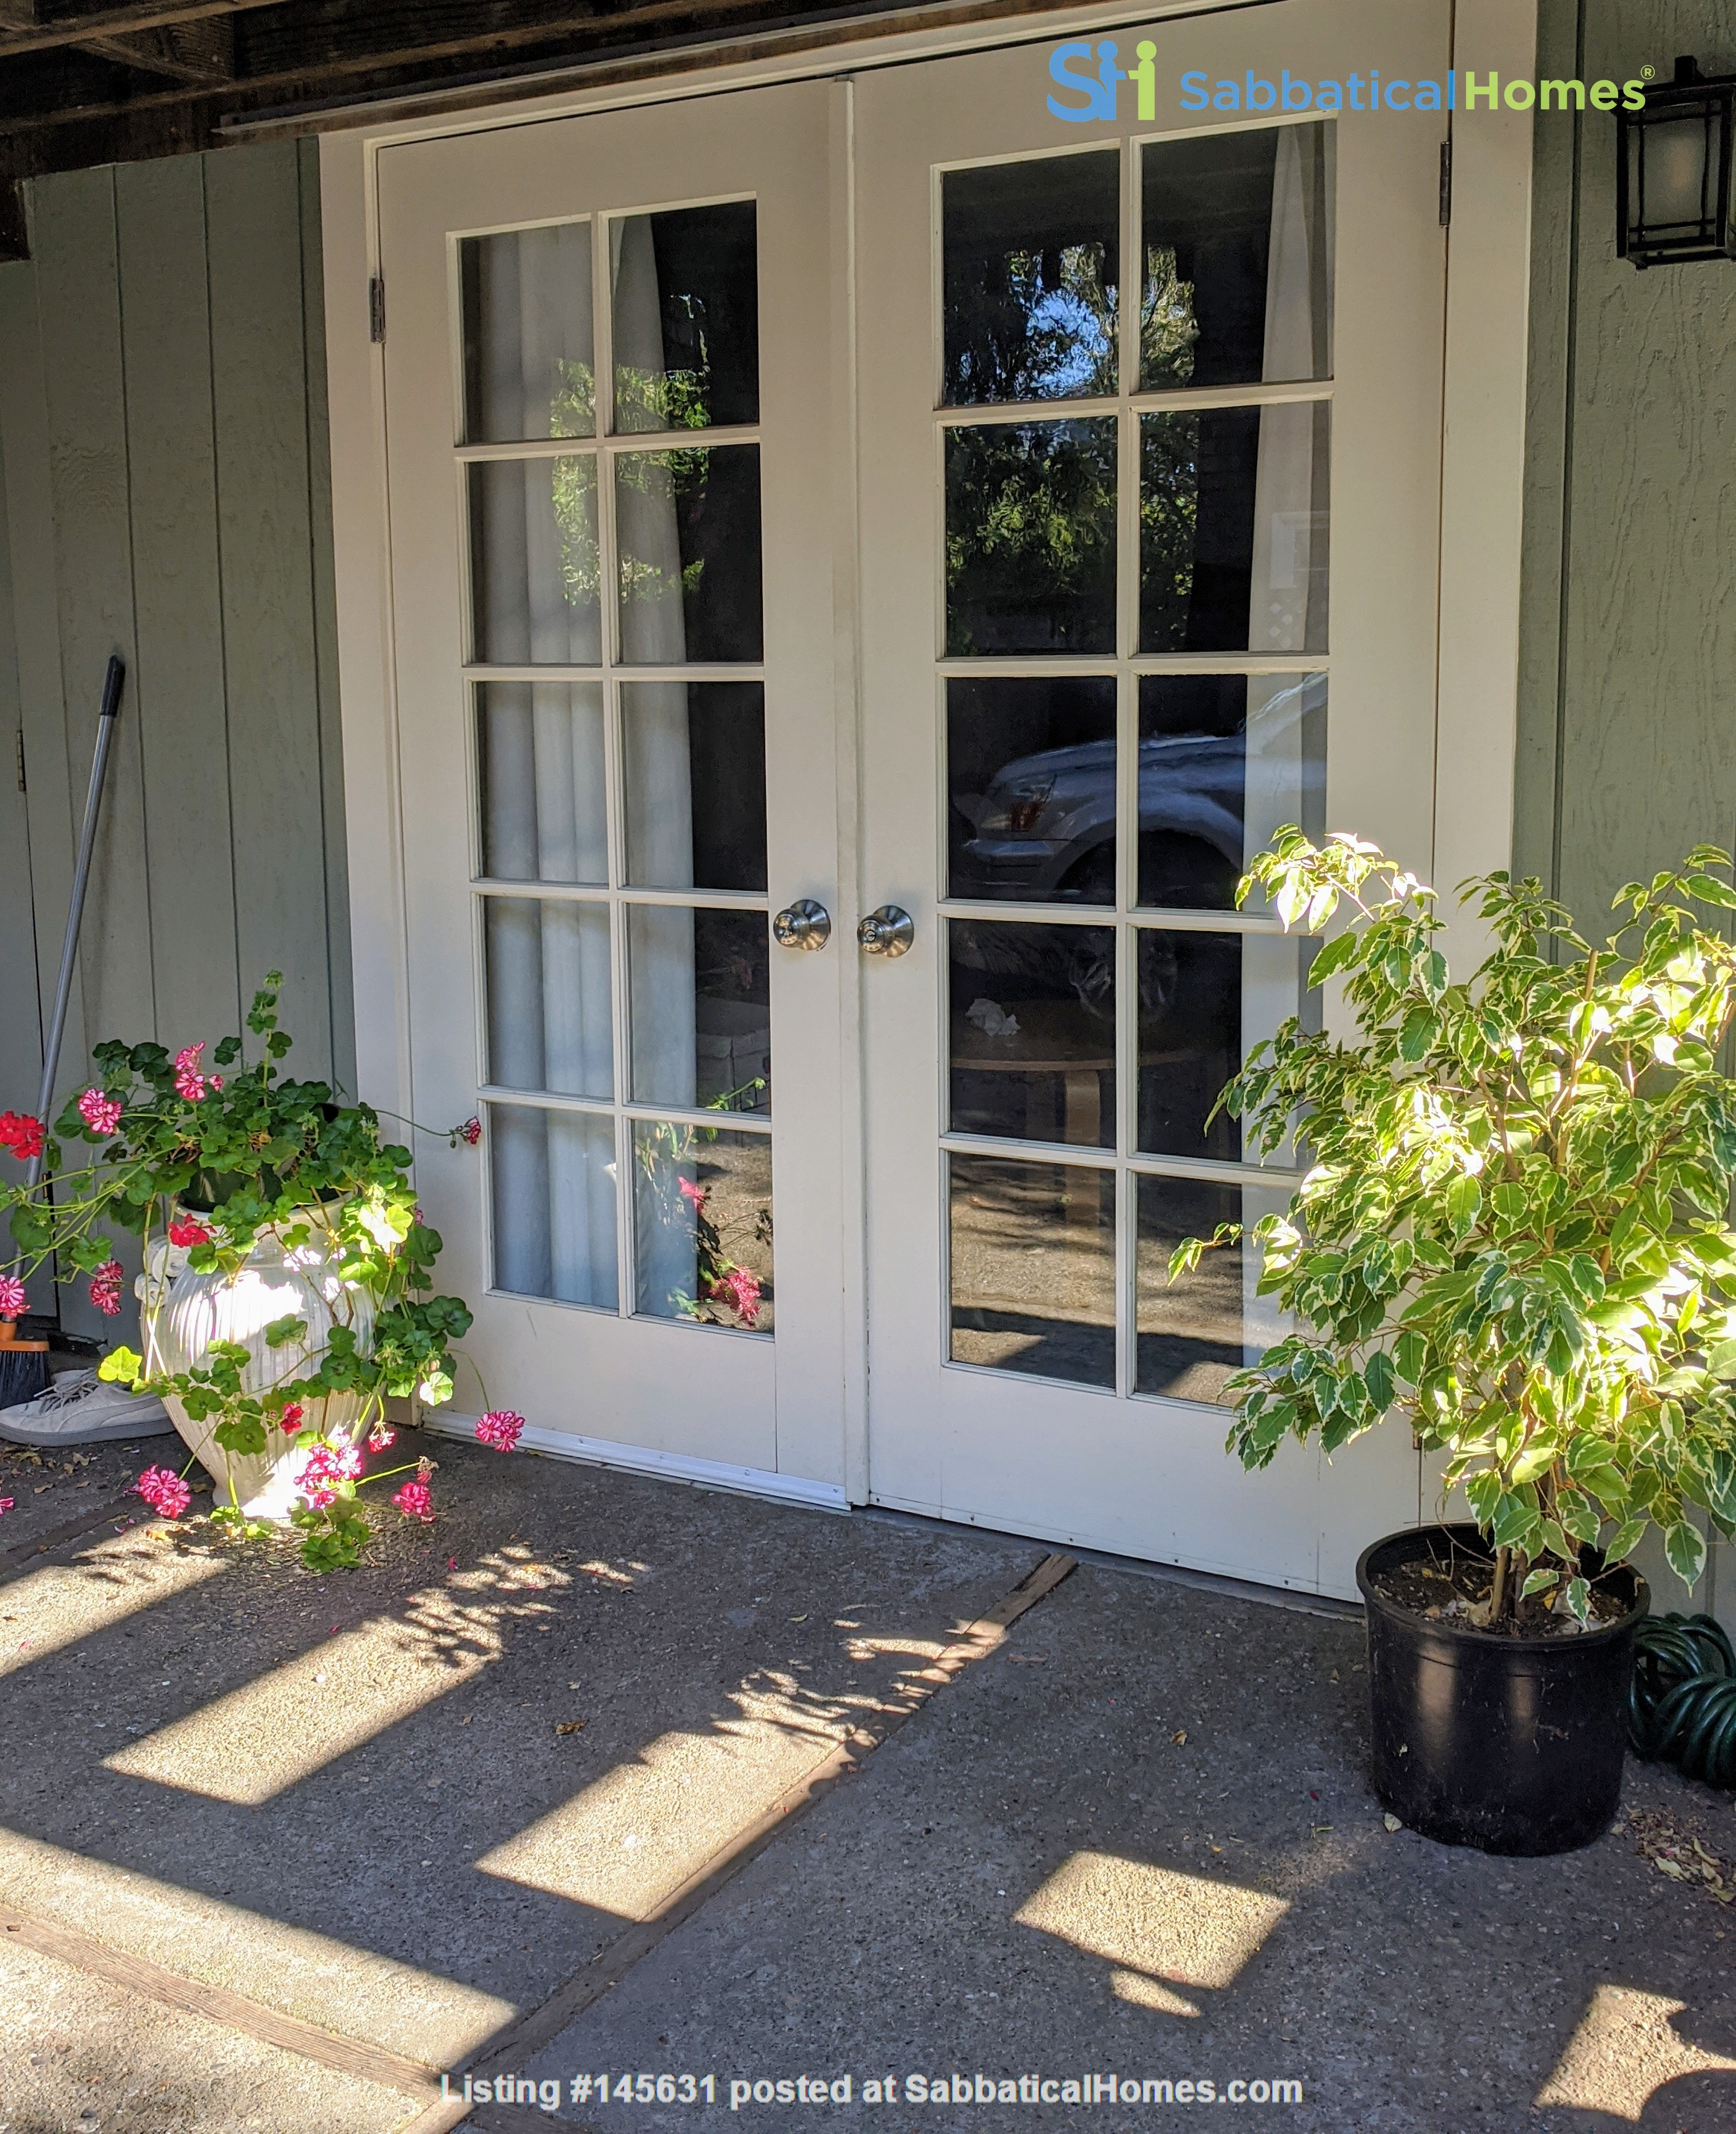 CHARMING PRIVATE COTTAGE 1 BR/1 BA + Office/studio space (720sft) Home Rental in San Rafael, California, United States 9